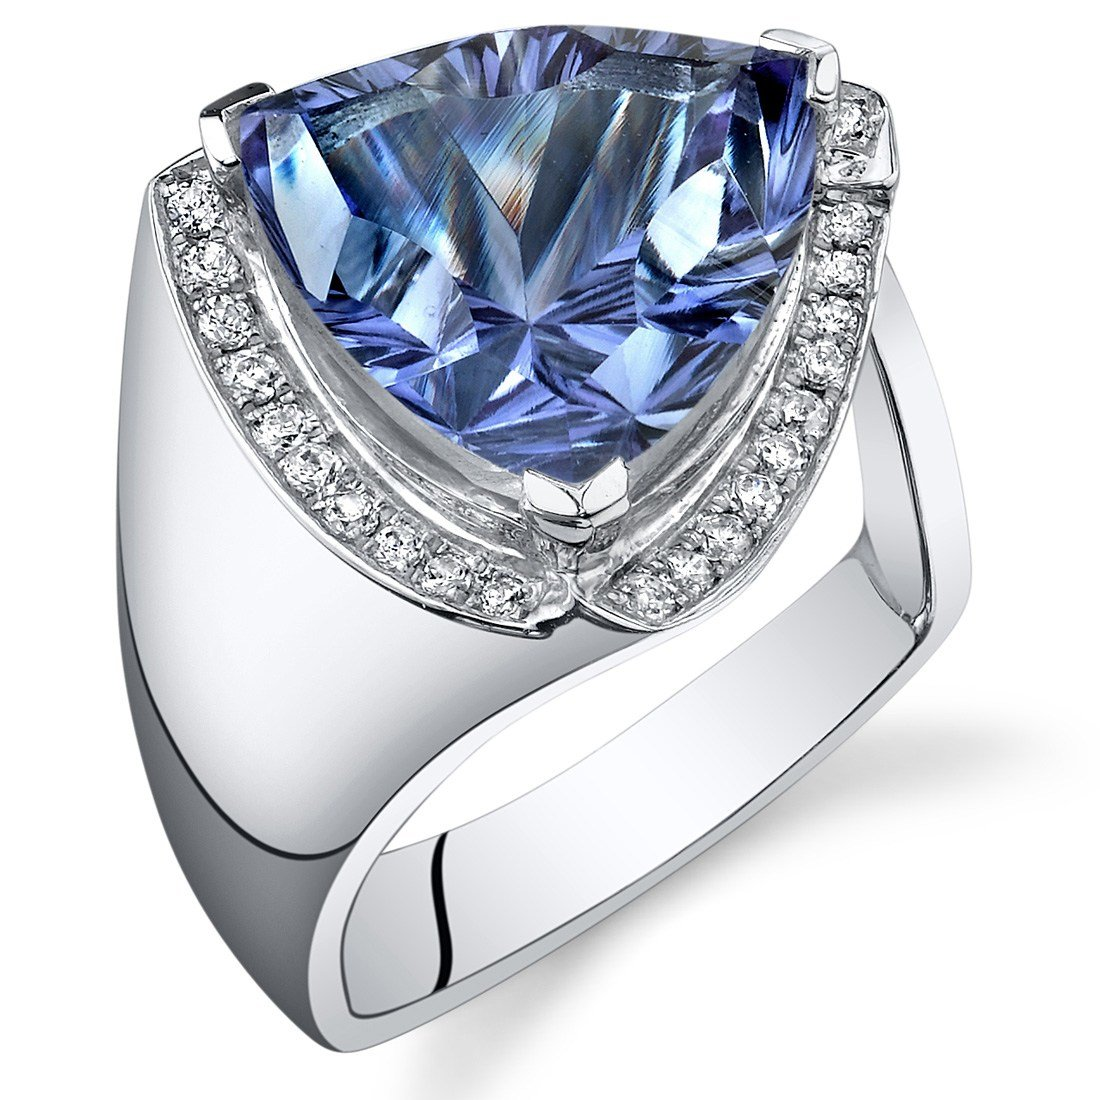 The Best 8 00 Cts Trillion Cut Alexandrite Ring Sterling Silver Pictures